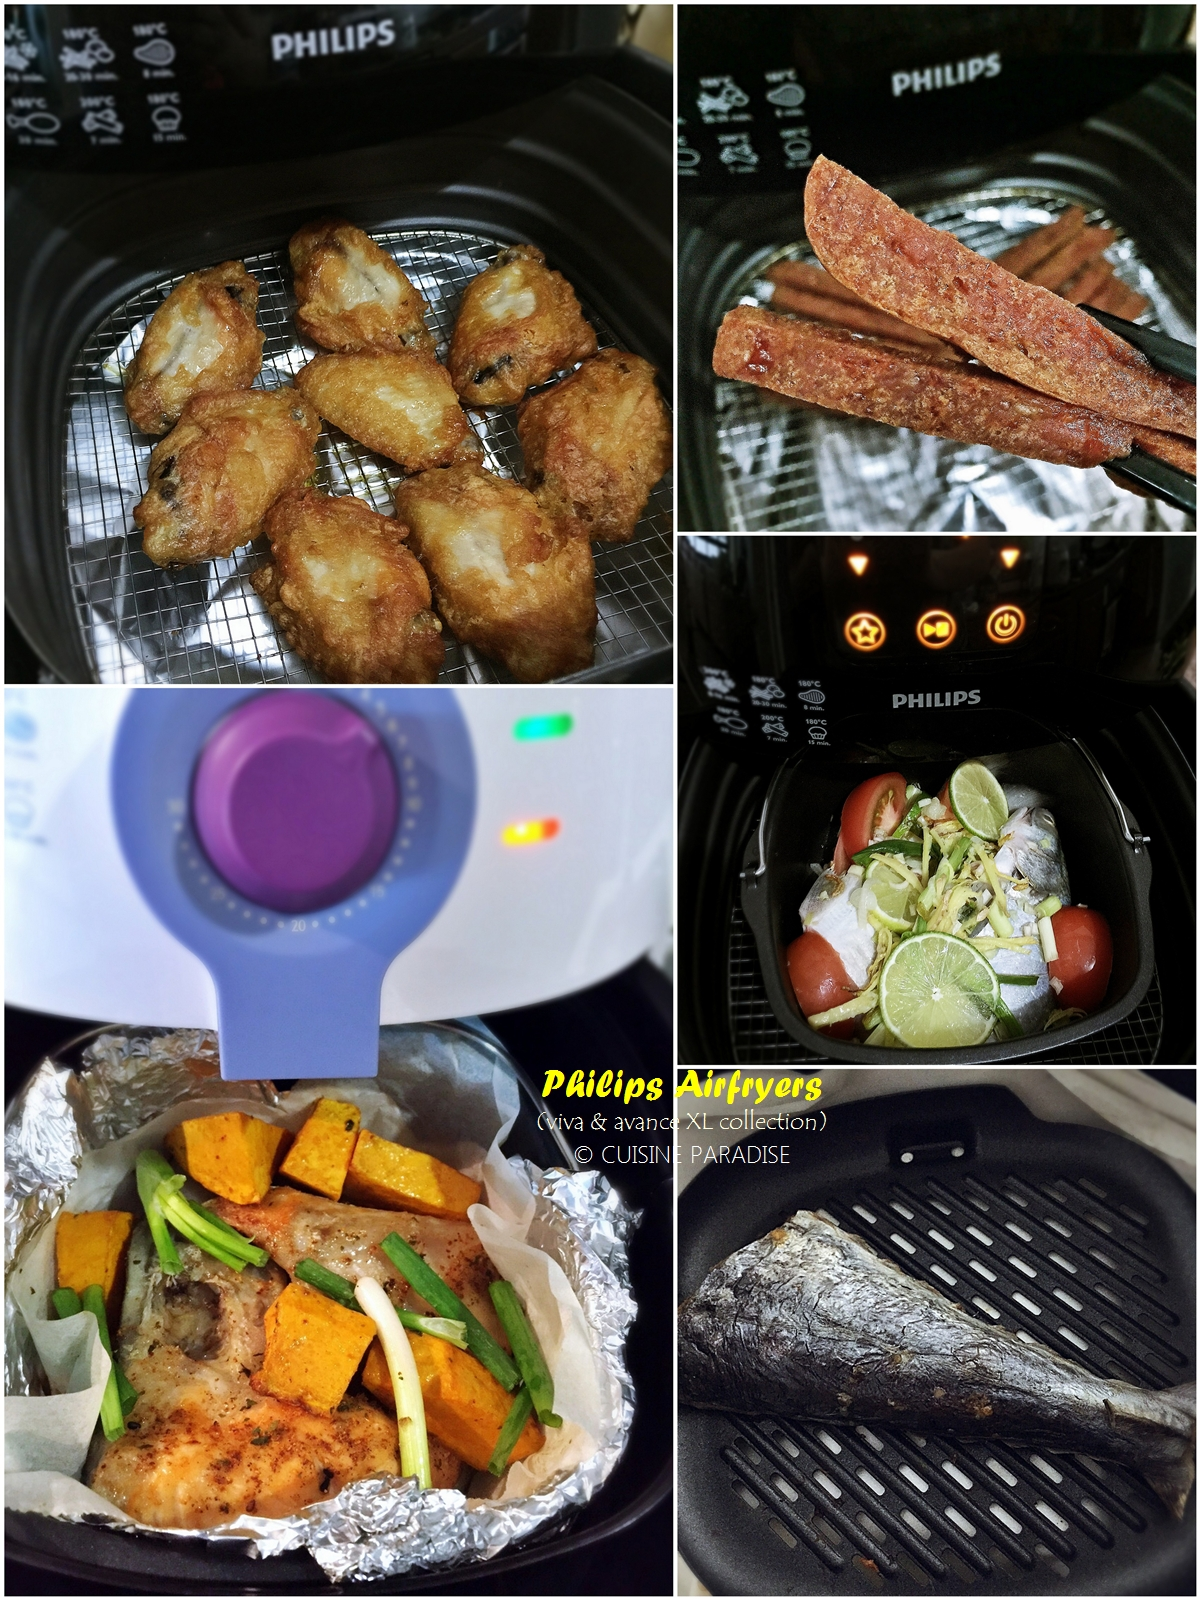 Cuisine paradise singapore food blog recipes reviews and travel recipes quick meals using philips airfryer forumfinder